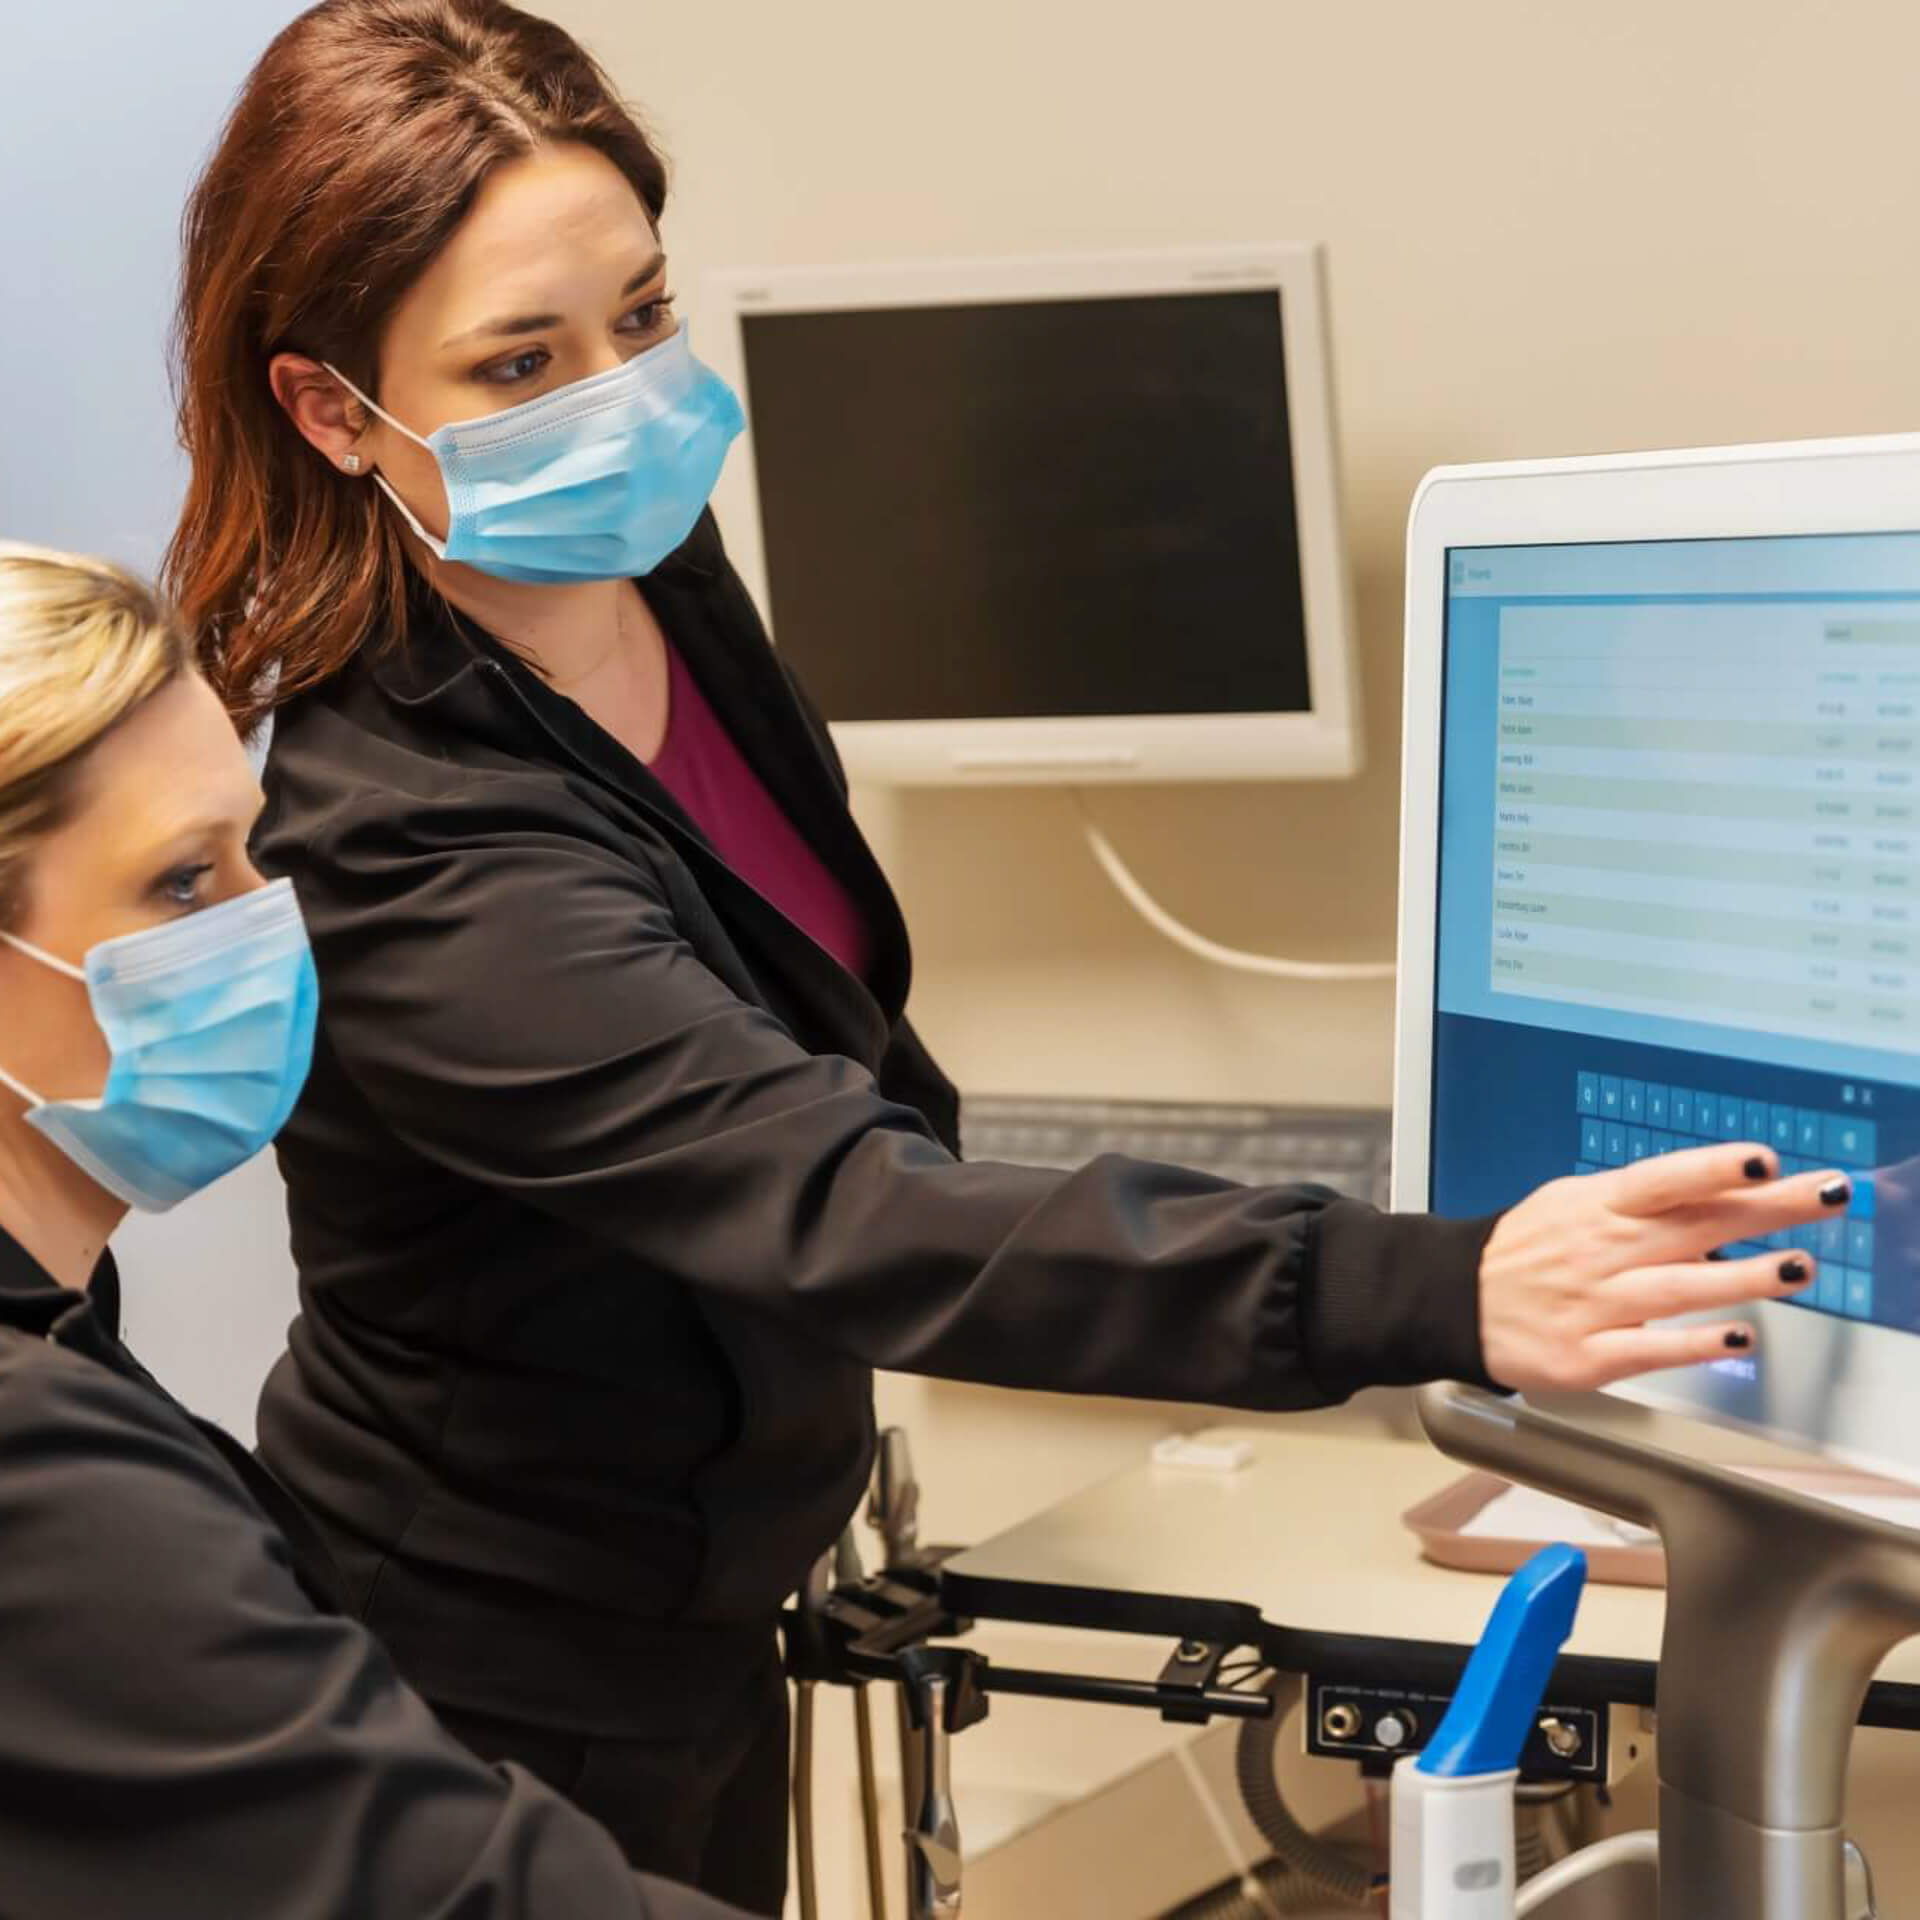 Showcasing the iTero scanner which allows us to take 3D scans of your mouth